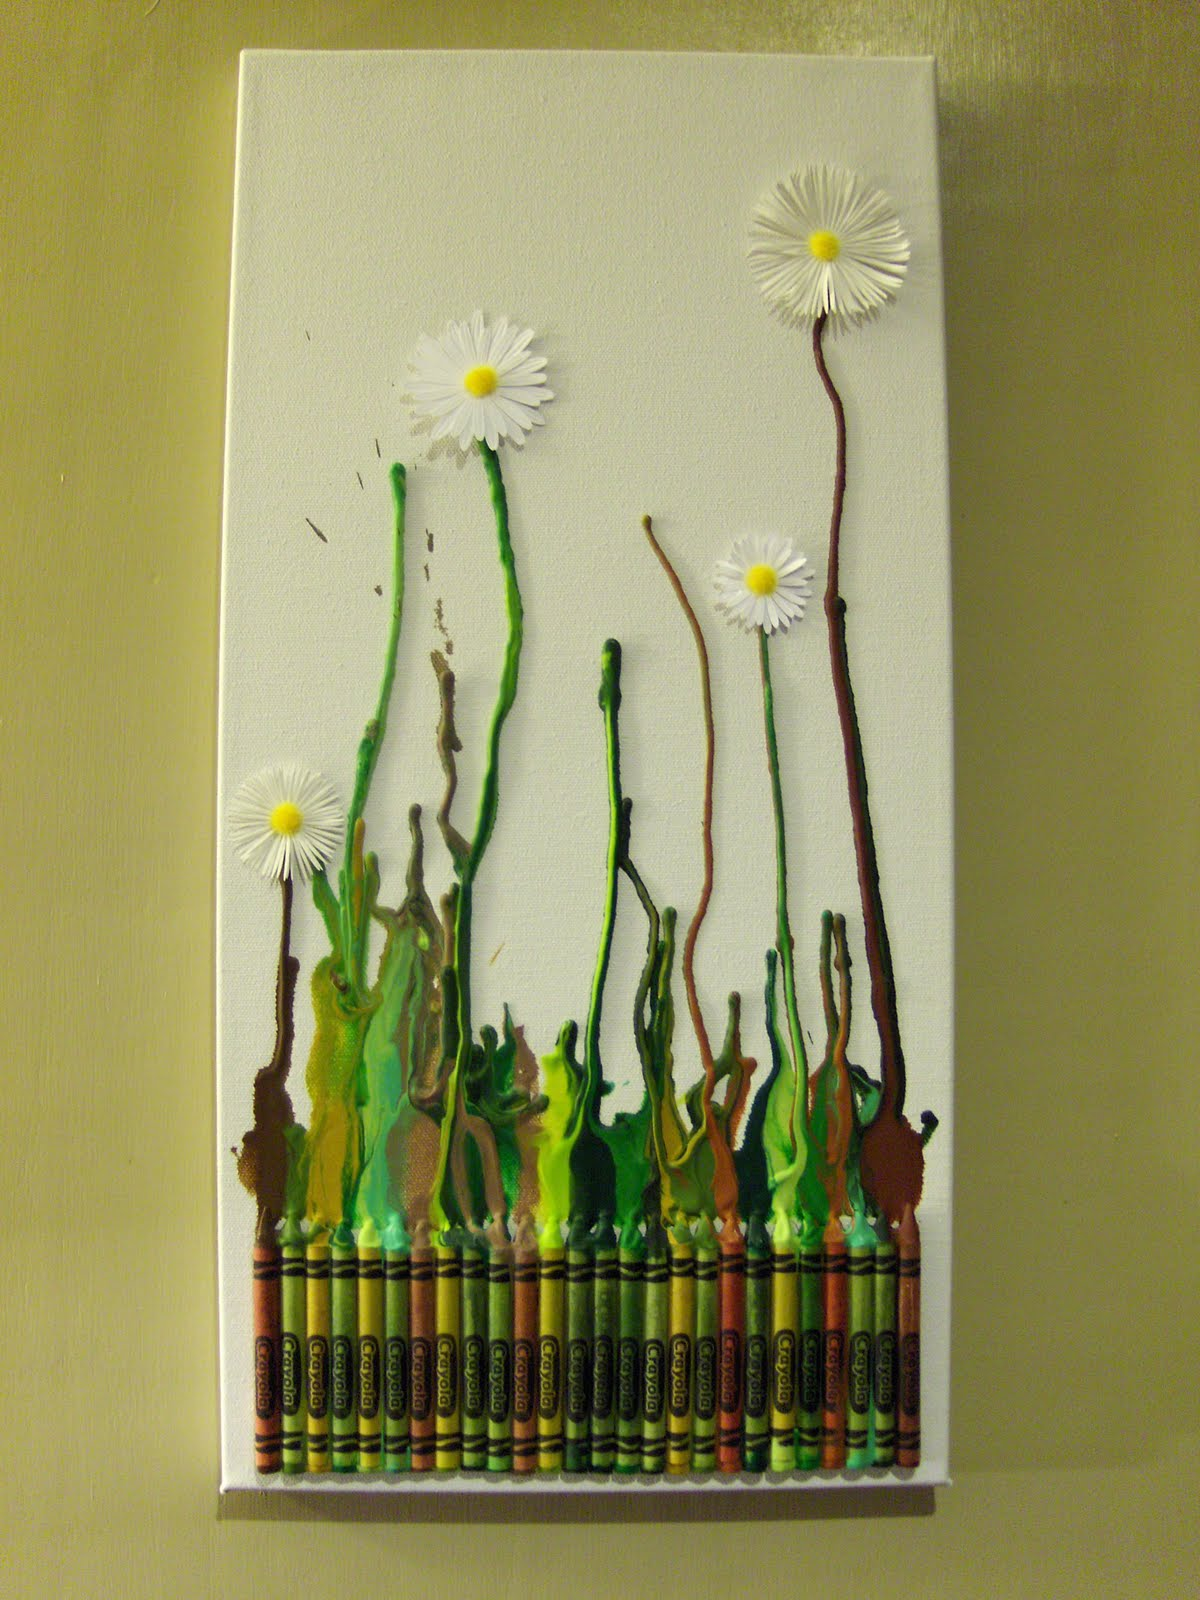 Daisy Art DIY from Crayons